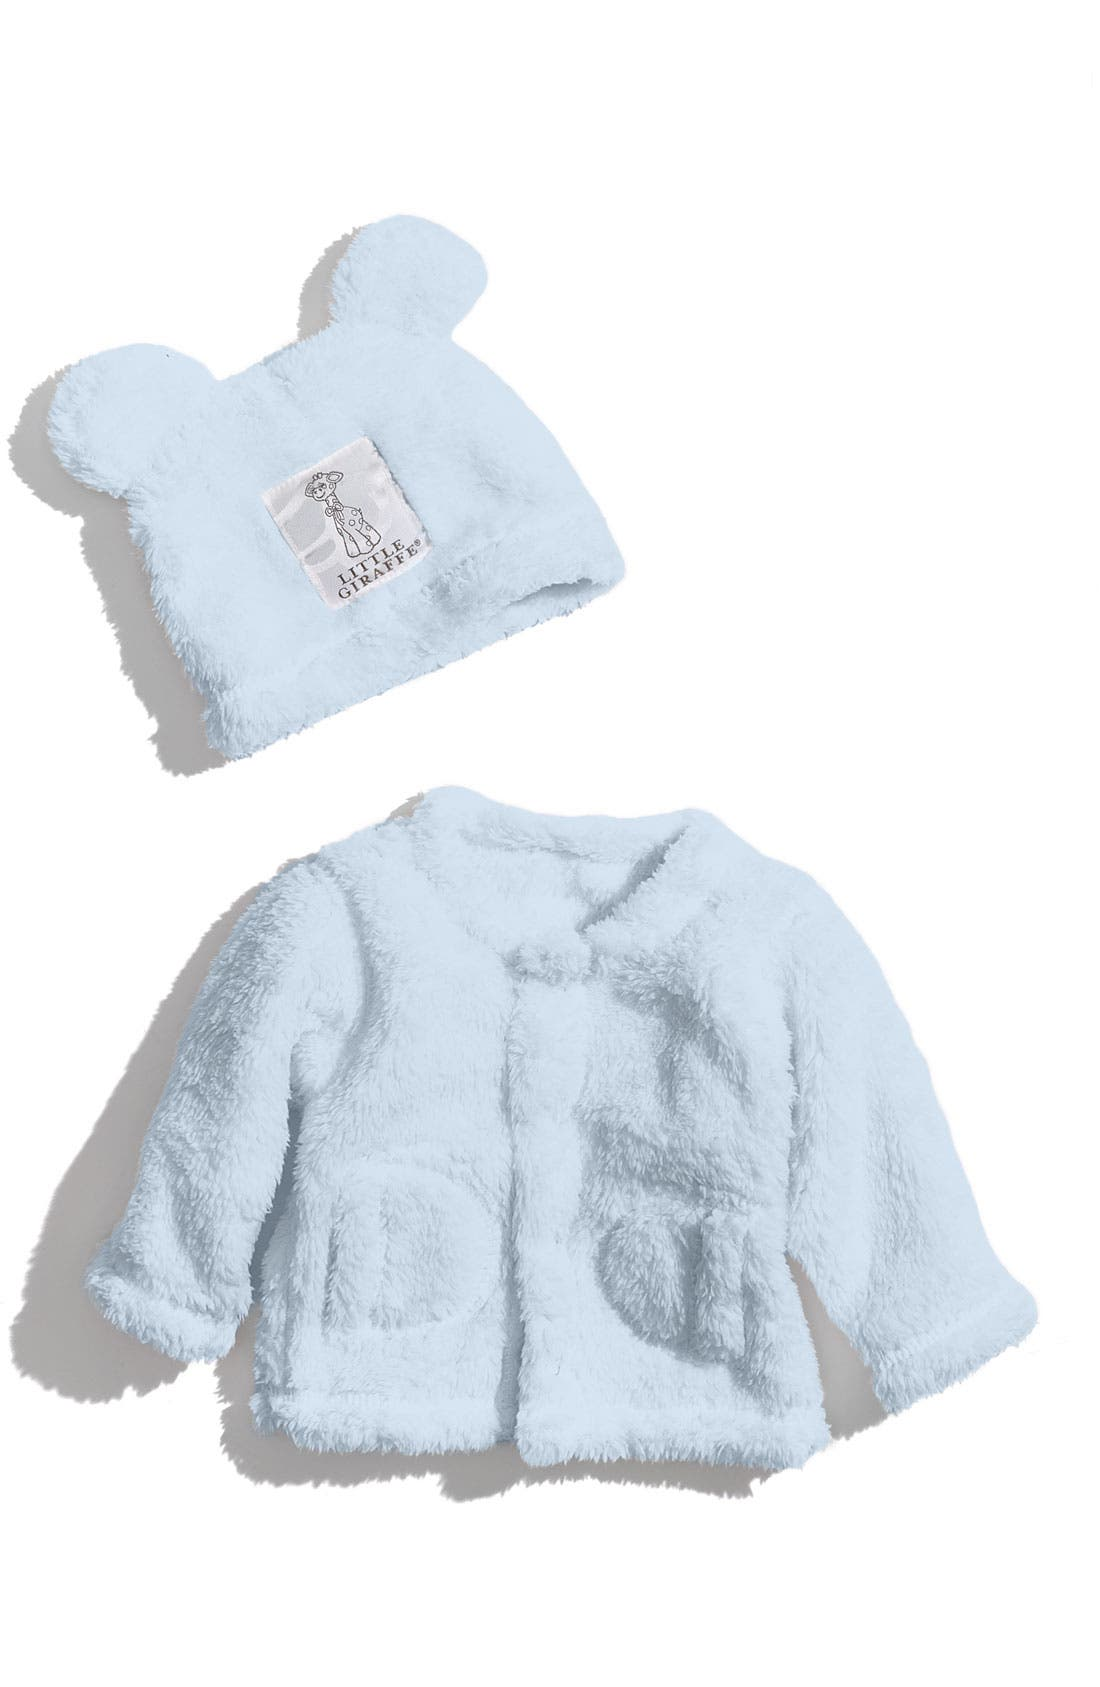 Main Image - Little Giraffe Cardigan & Cap Set (Baby)